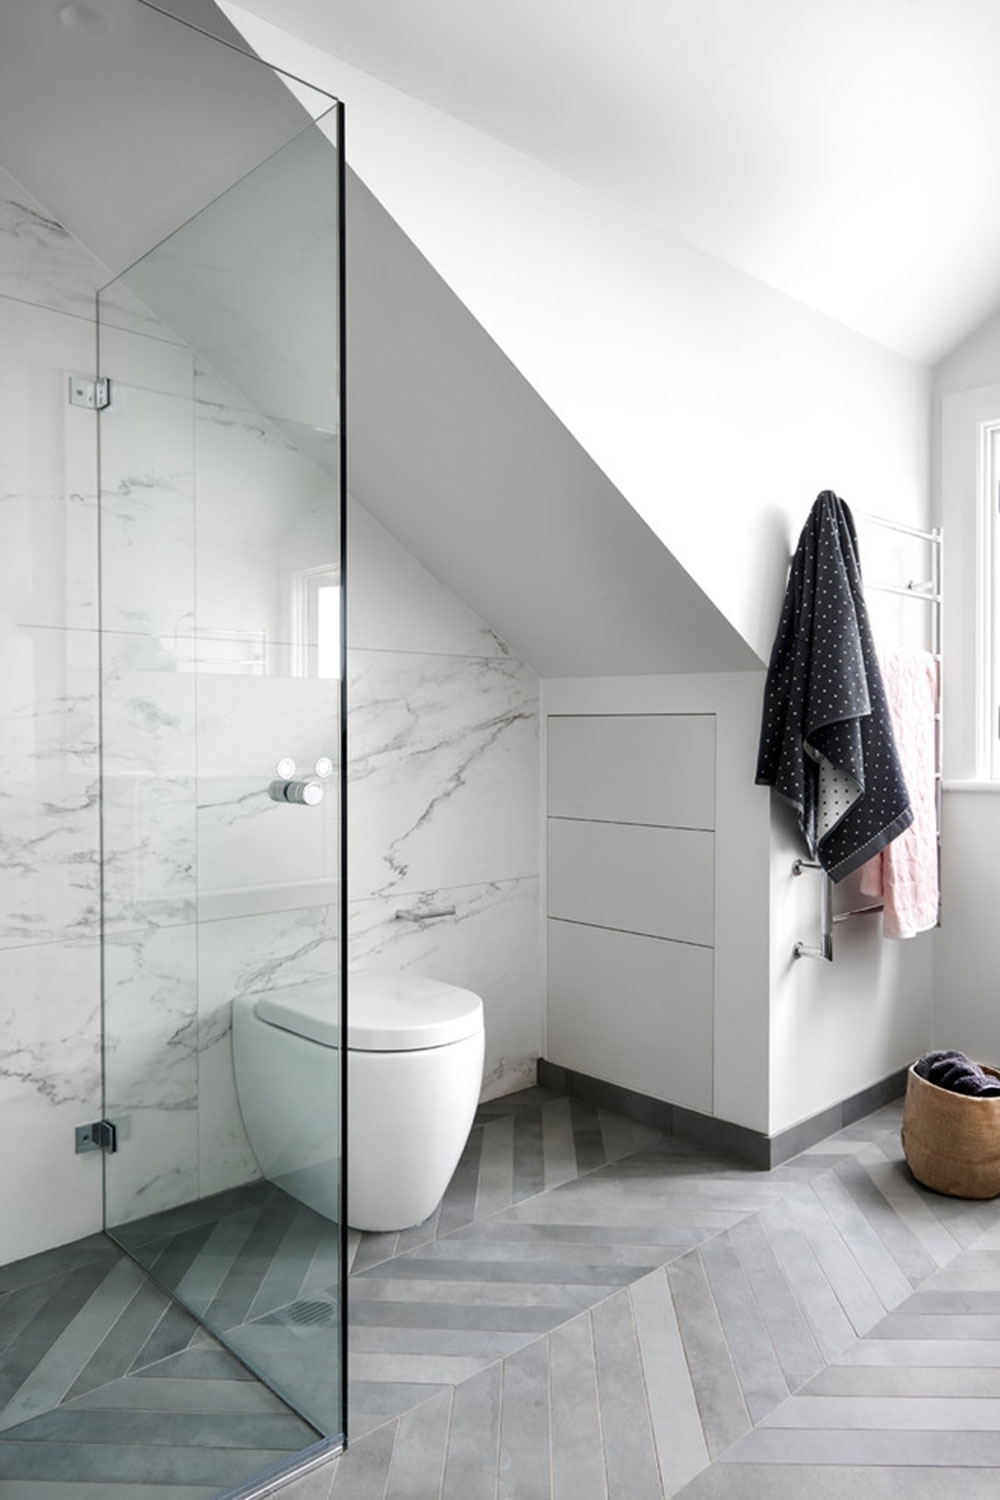 Bathroom Under Stairs And Tips And Best Practices For This Space Bathroom Under Stairs Design